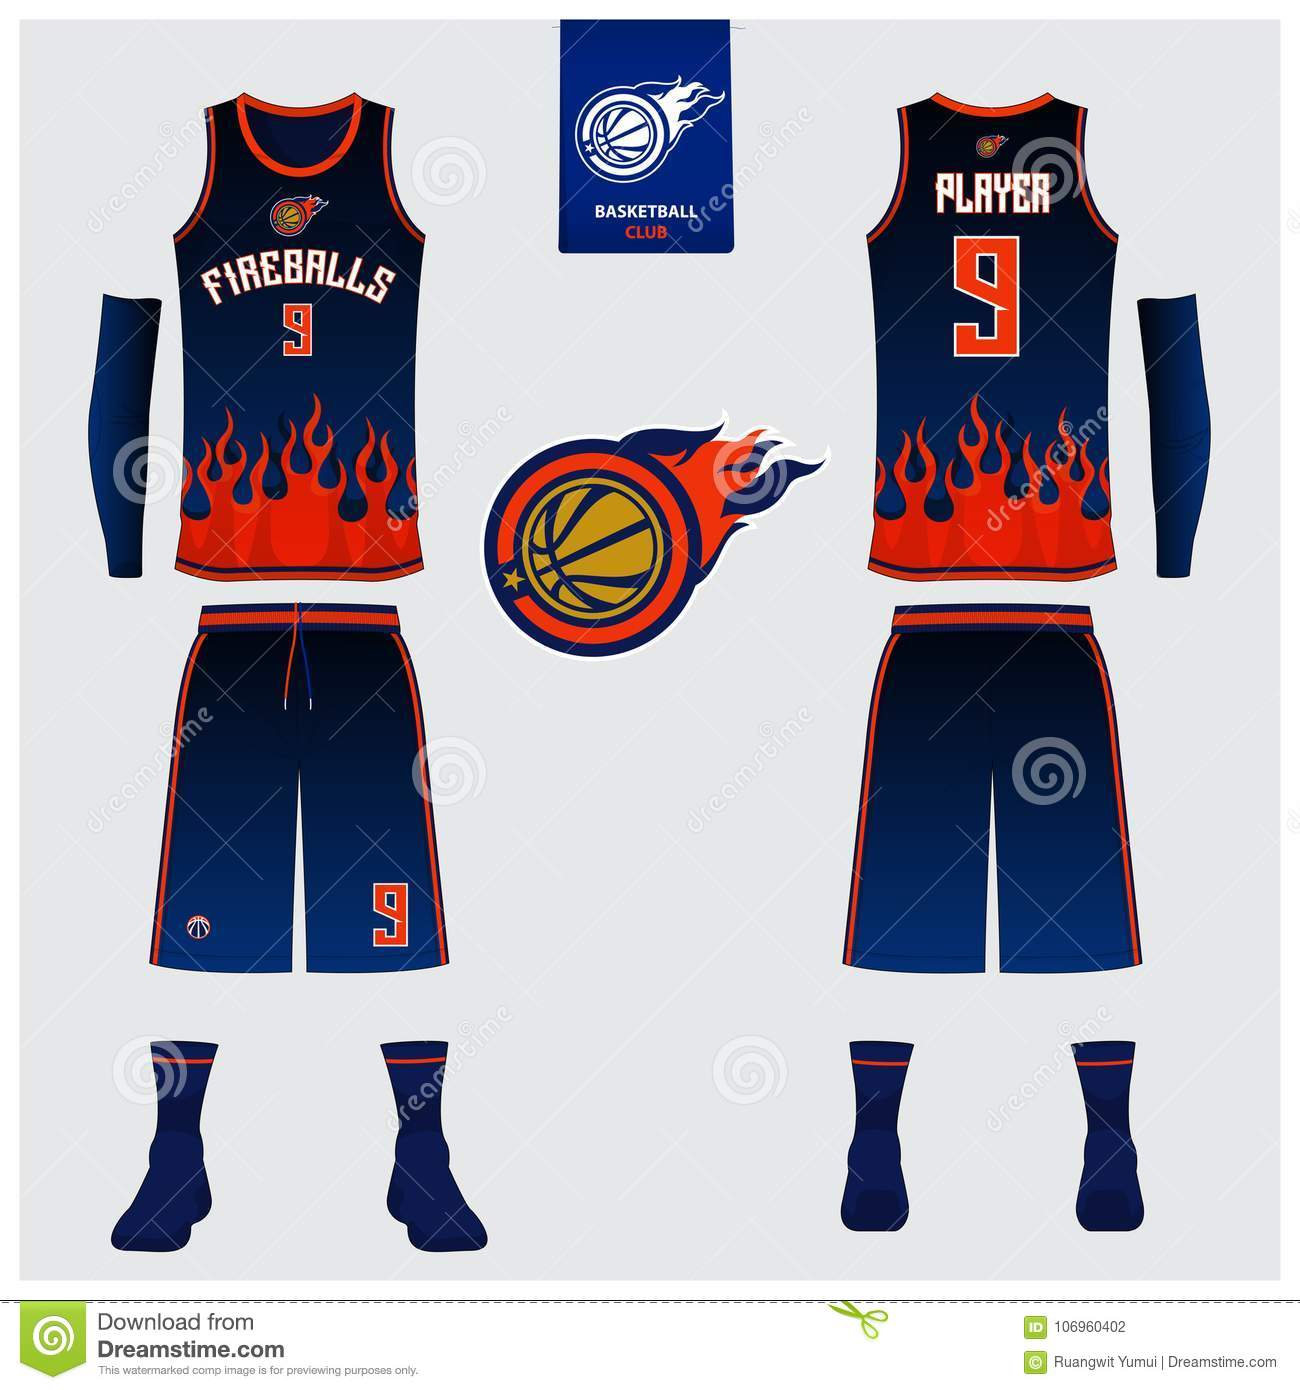 basketball jersey shorts socks template for basketball club front and back view sport uniform tank top t shirt mock up stock vector illustration of icon jersey 106960402 https www dreamstime com basketball jersey shorts socks template club front back view sport uniform tank top t shirt mock up design mockup vector image106960402